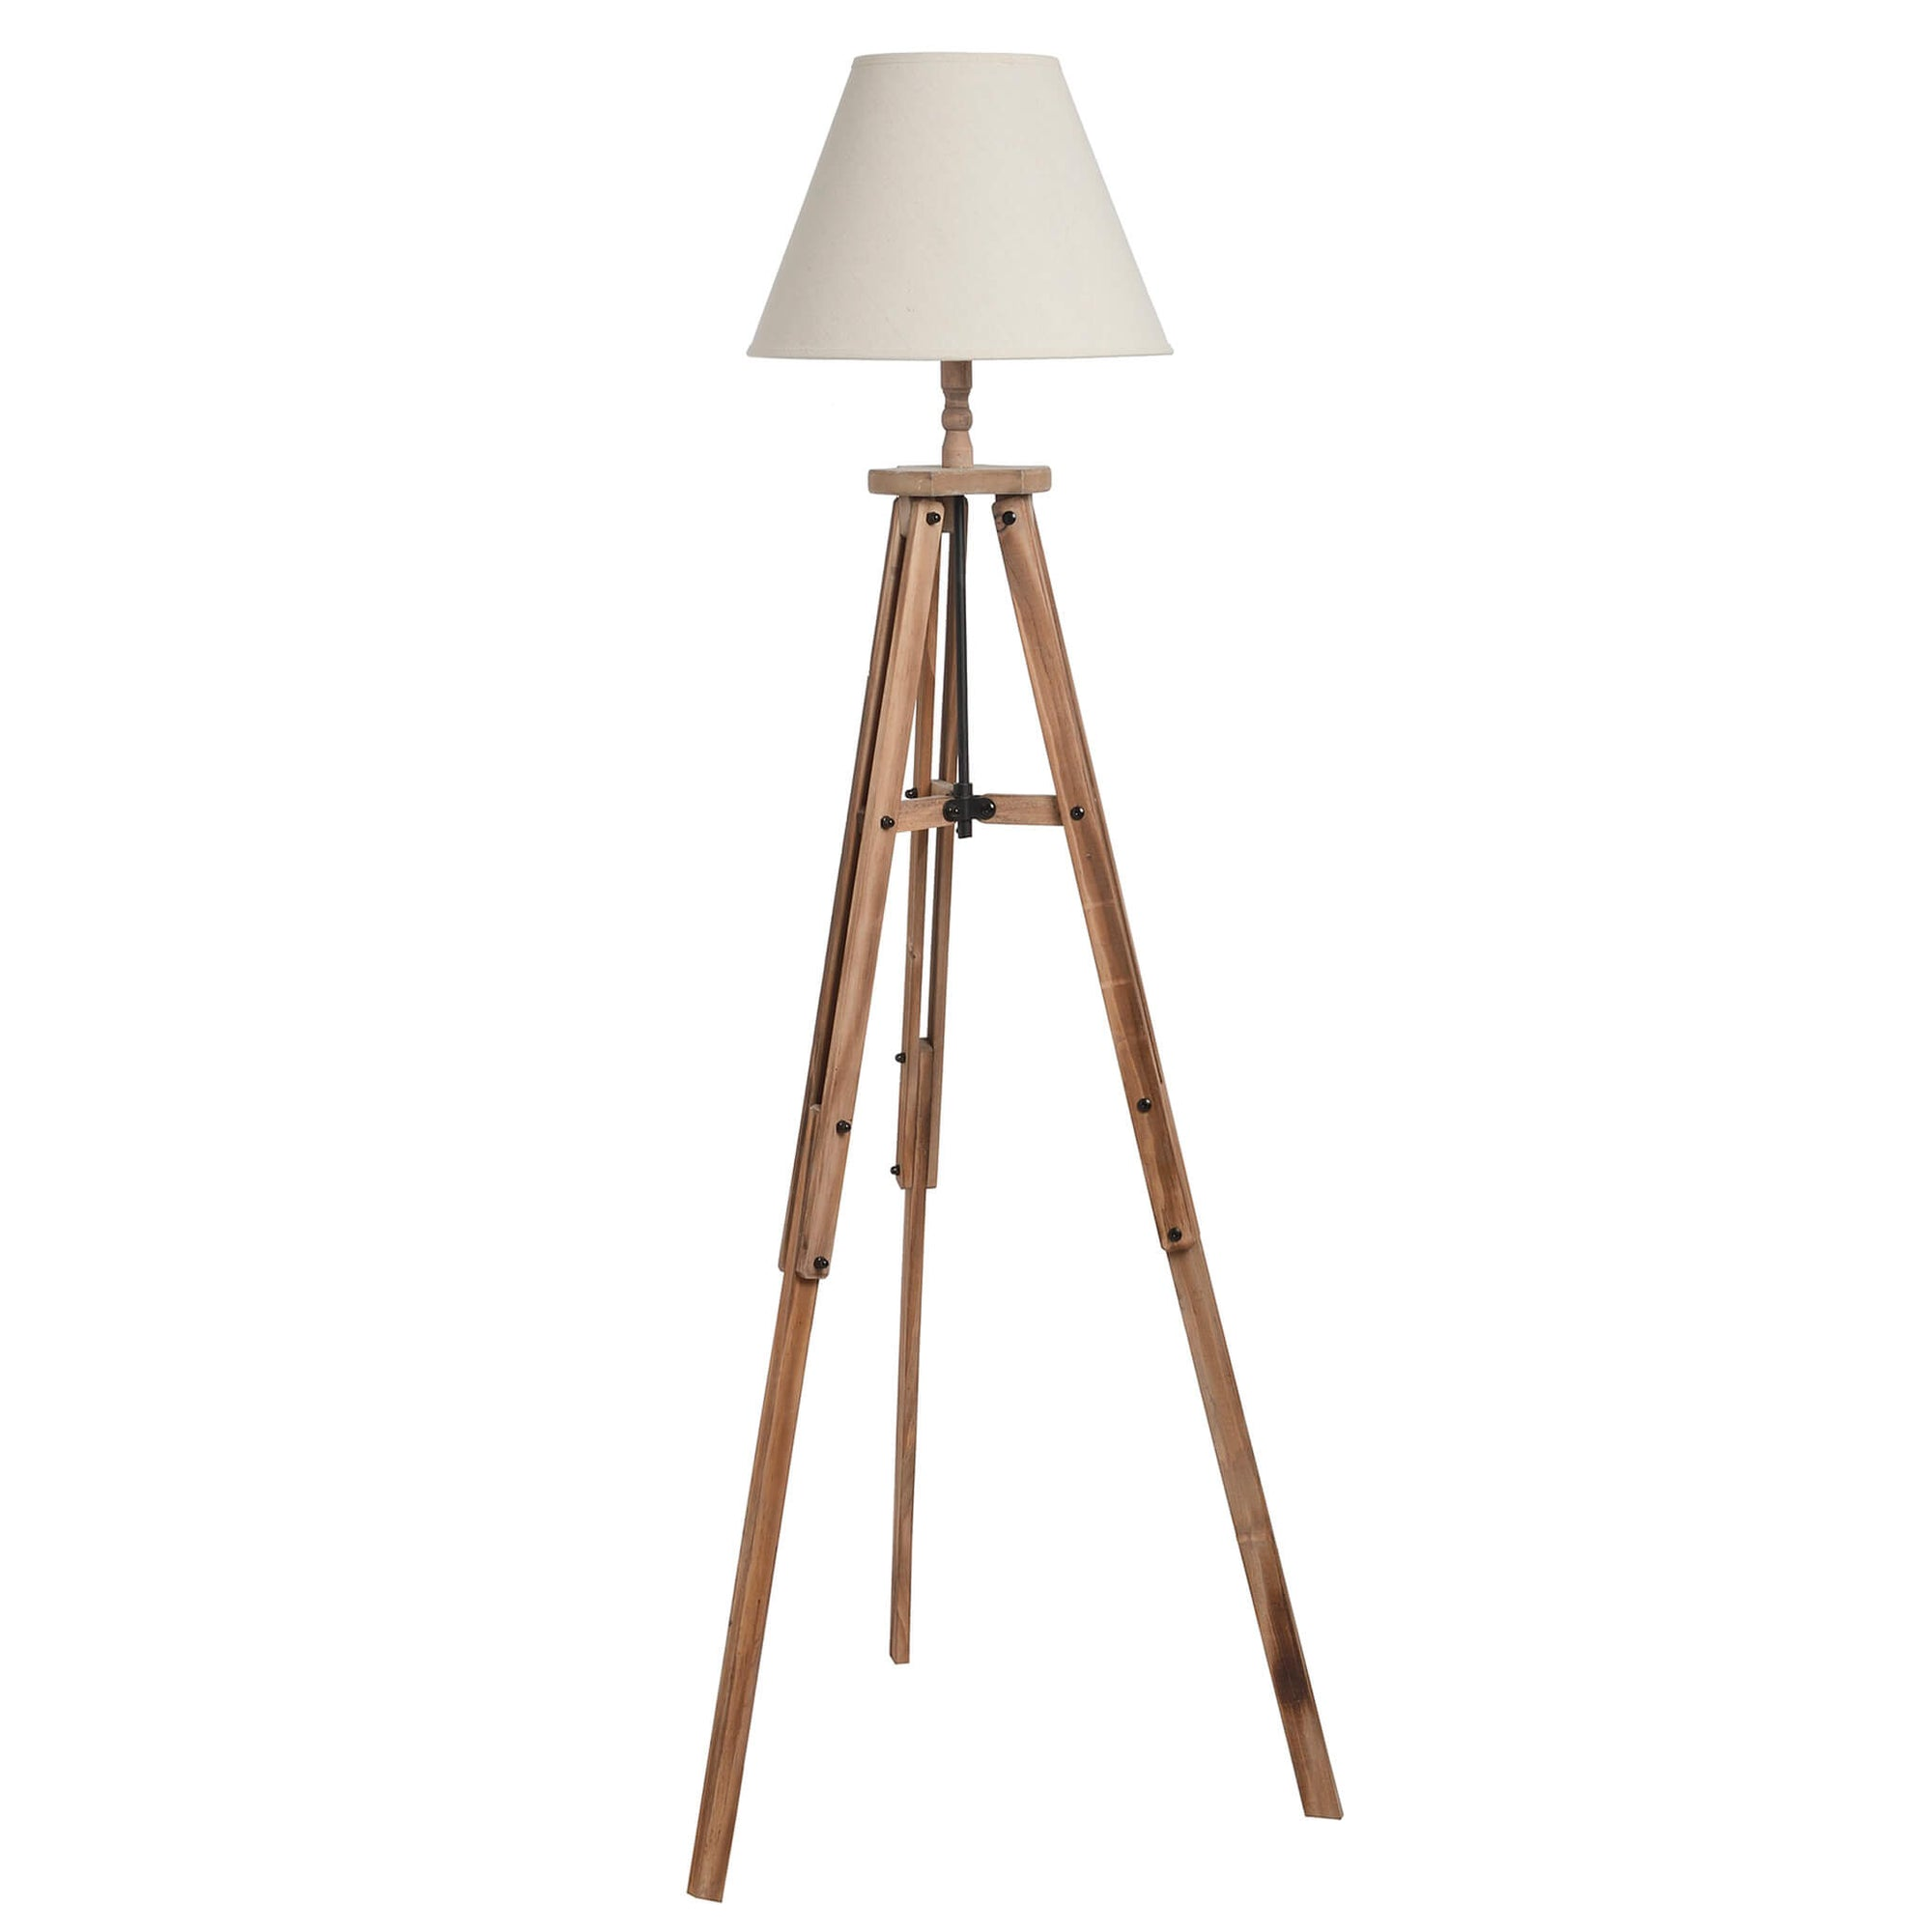 Wooden Tripod Lamp - Large